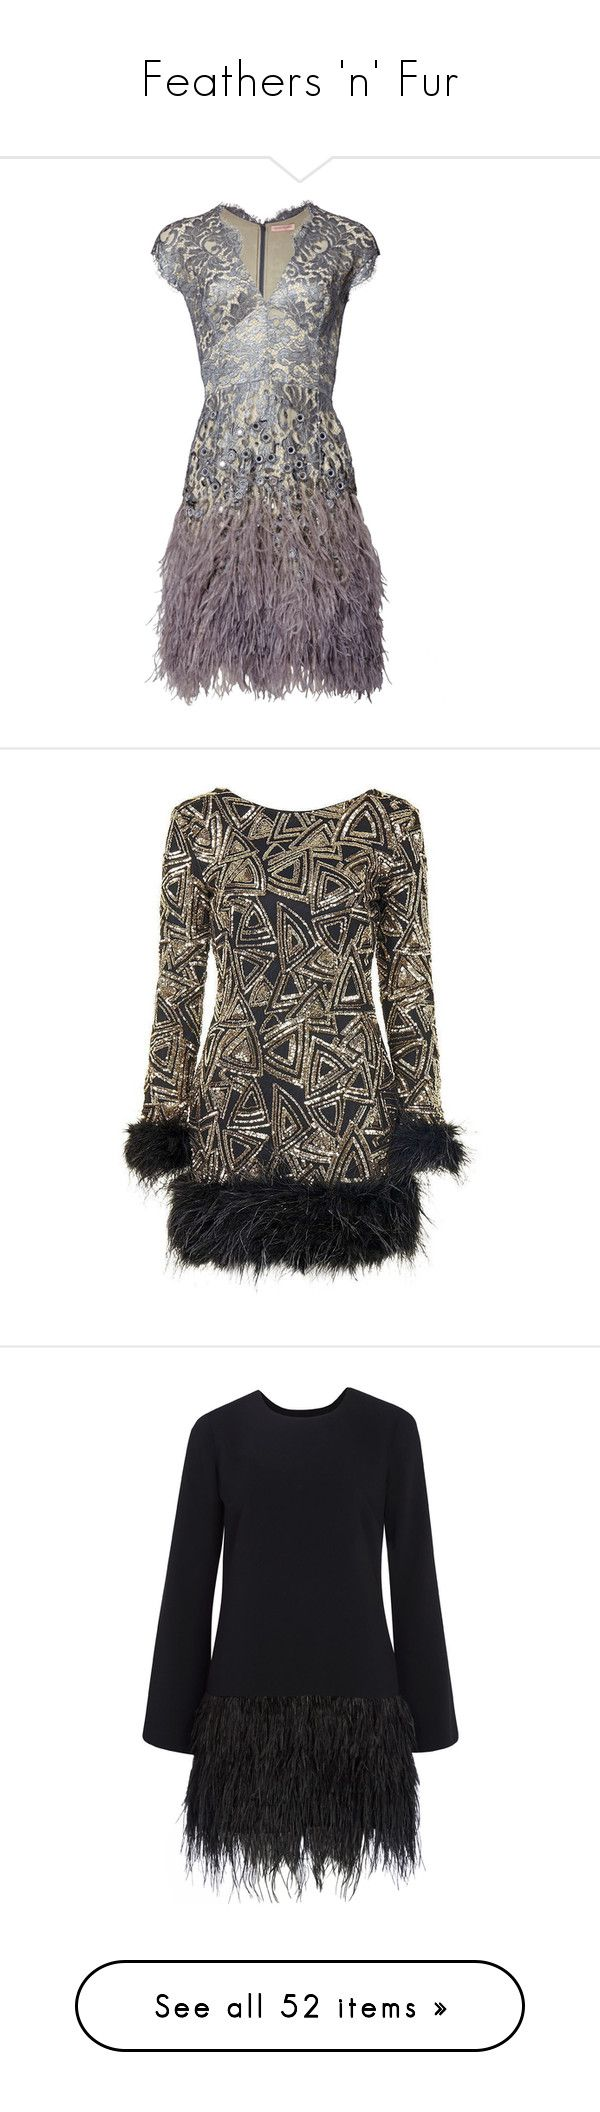 """""""Feathers 'n' Fur"""" by stardustnf ❤ liked on Polyvore featuring dresses, silver dress, white feather cocktail dress, white lace cocktail dress, feather cocktail dress, lace mini dress, vestidos, flapper dress, sequin flapper dress and topshop dresses"""